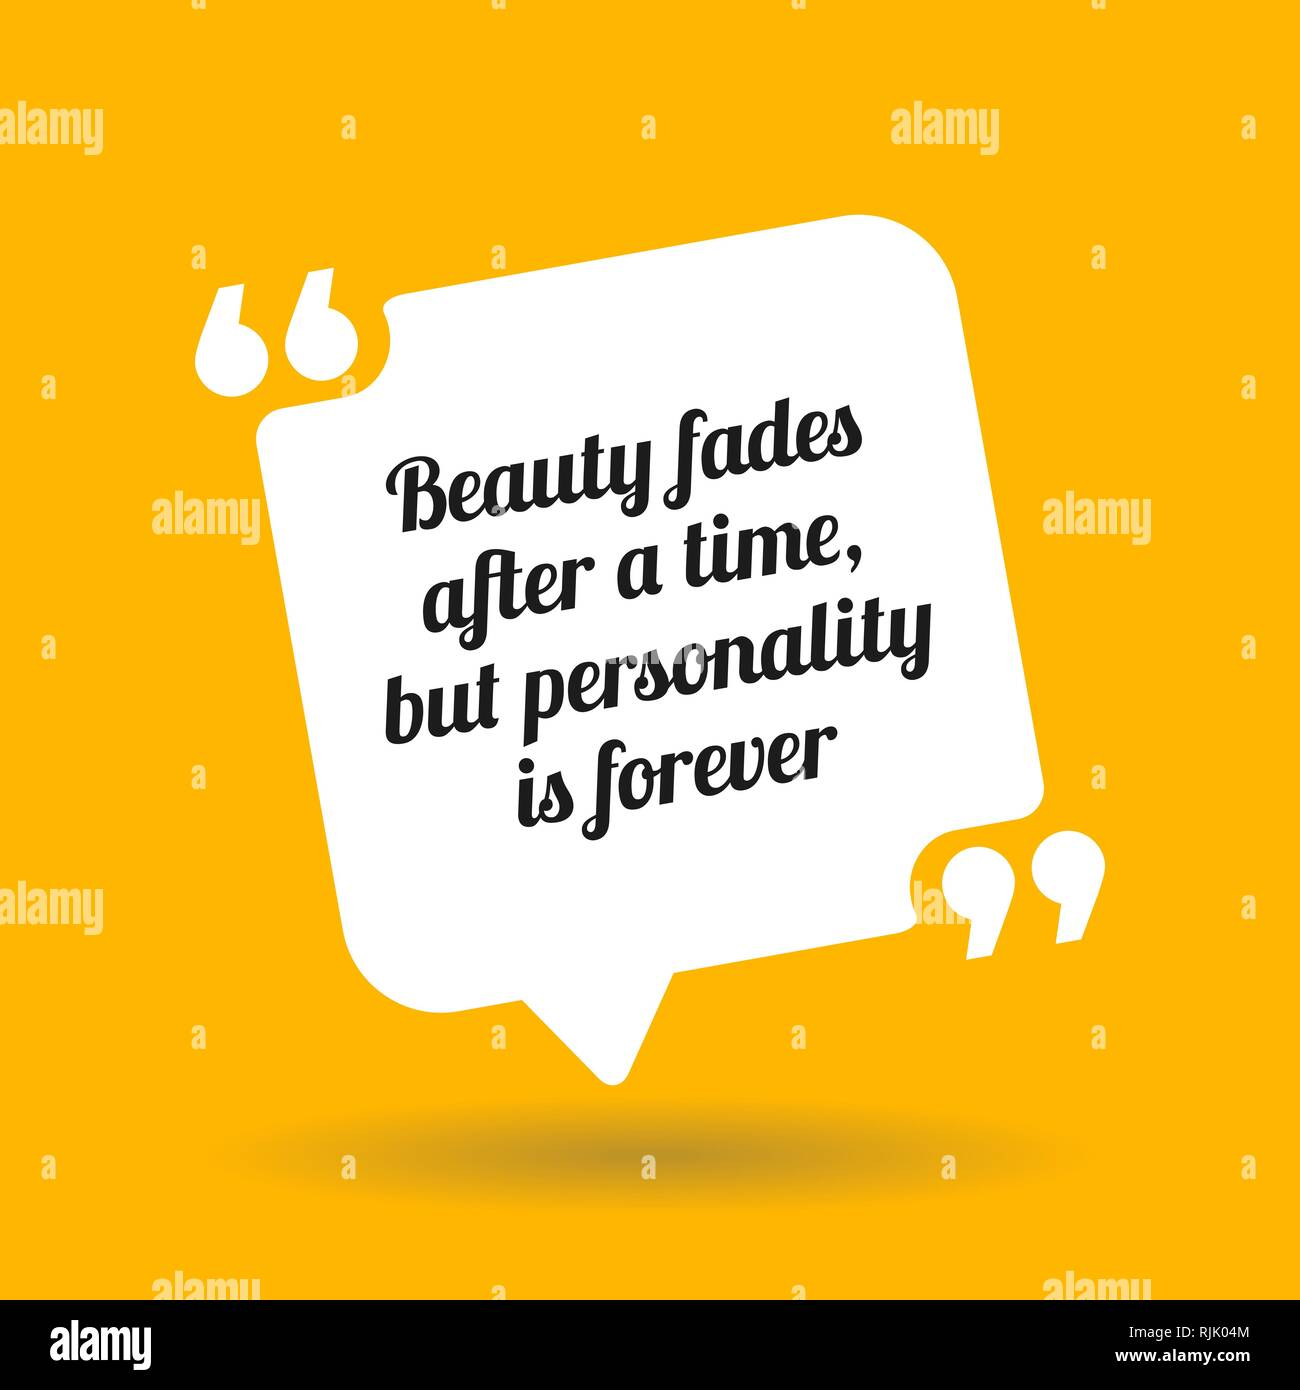 Inspirational motivational quote. Beauty fades after a time, but personality is forever. White quote symbol with shadow on yellow background - Stock Vector